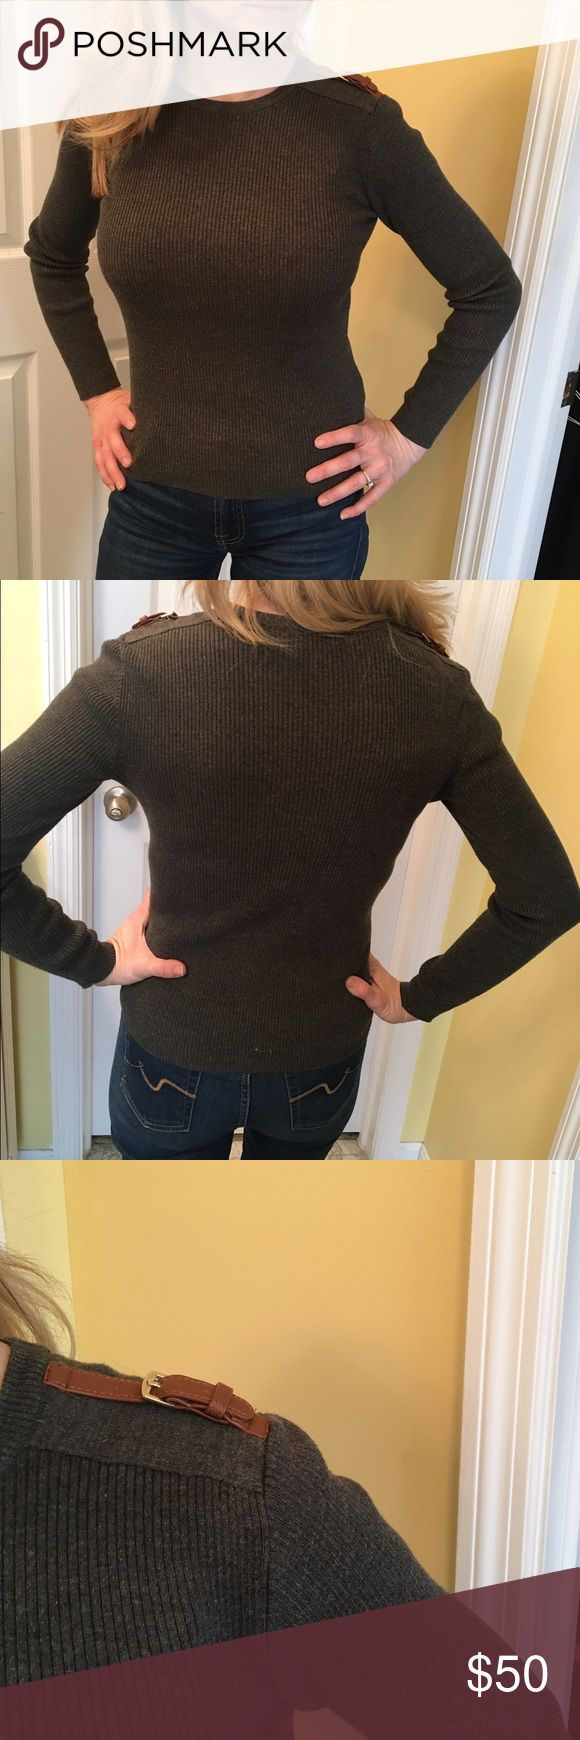 Lauren by Ralph Lauren Petite Sweater NWOT Really cute sweater by Lauren by Ralph Lauren Petite! This sweater is a charcoal gray color, 100% cotton (very soft and not itchy at all). The size is P/S and this sweater is in NWOT condition! Smoke-free home! Lauren Ralph Lauren Sweaters Crew & Scoop Necks